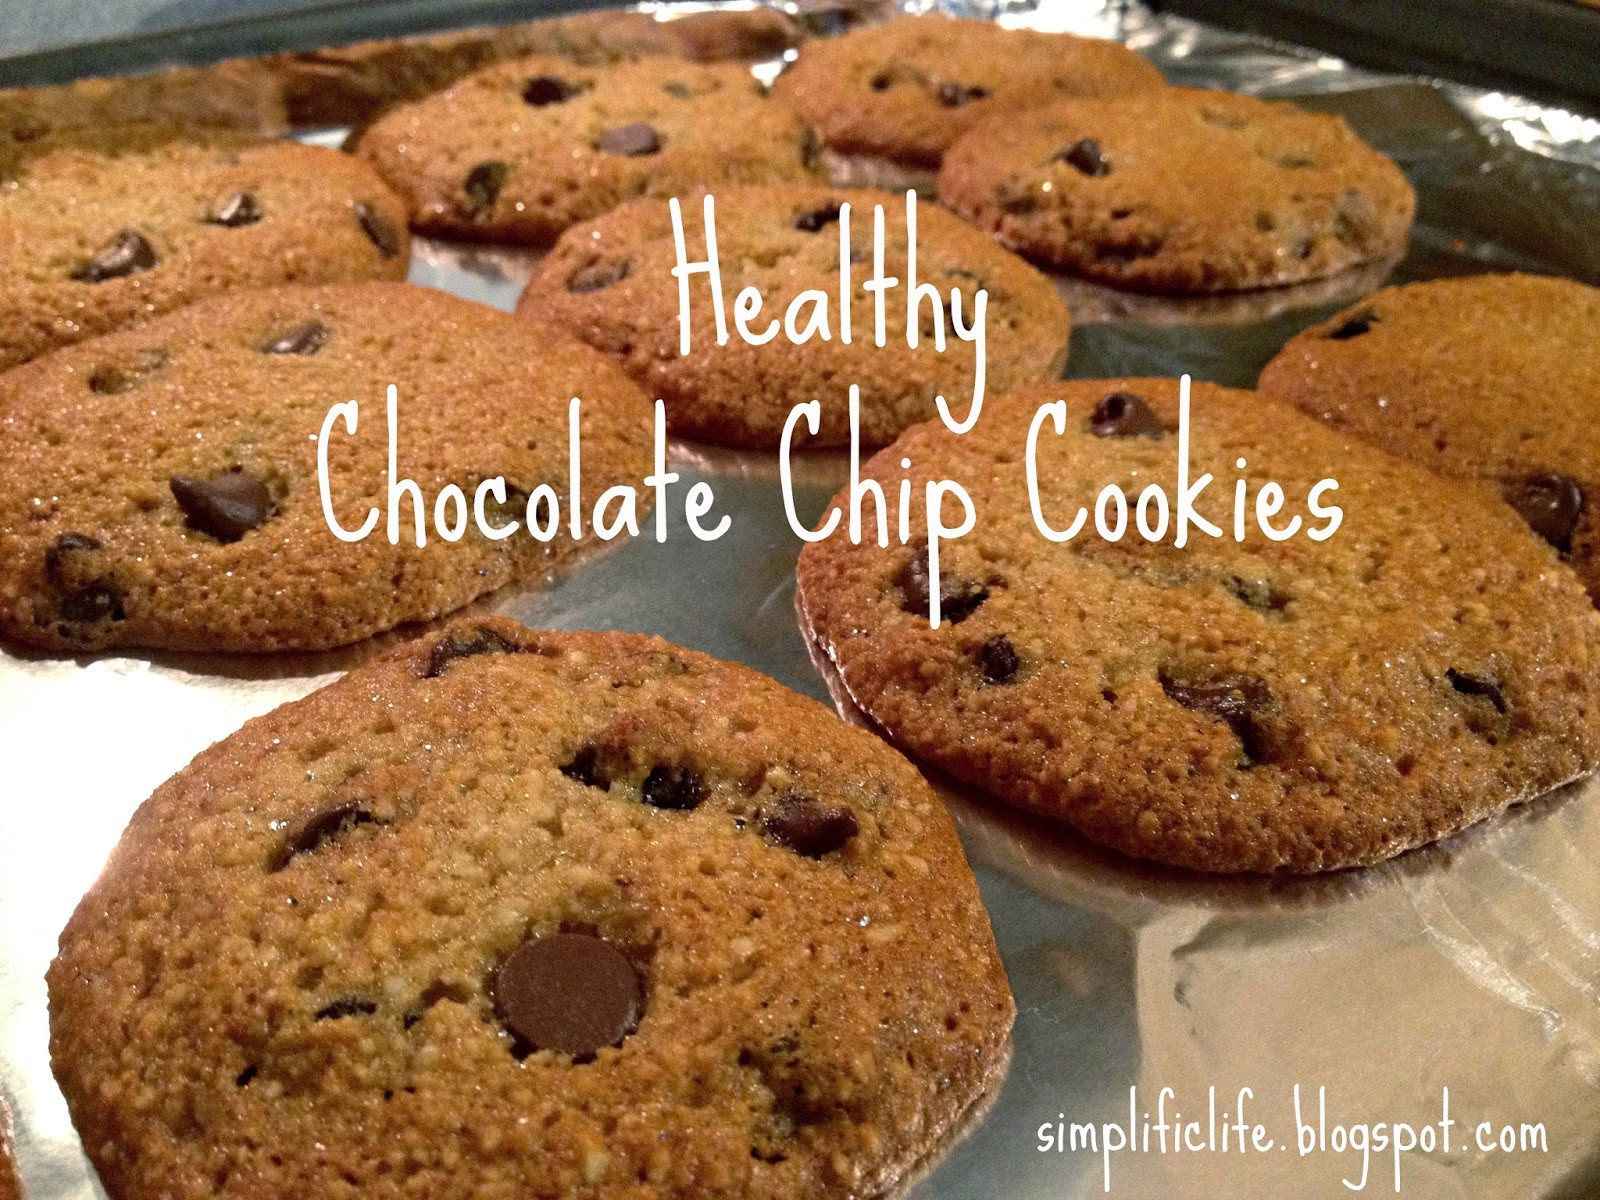 Chocolate Chip Cookies Healthy  The Simple Life Healthy Chocolate Chip Cookies Gluten Free